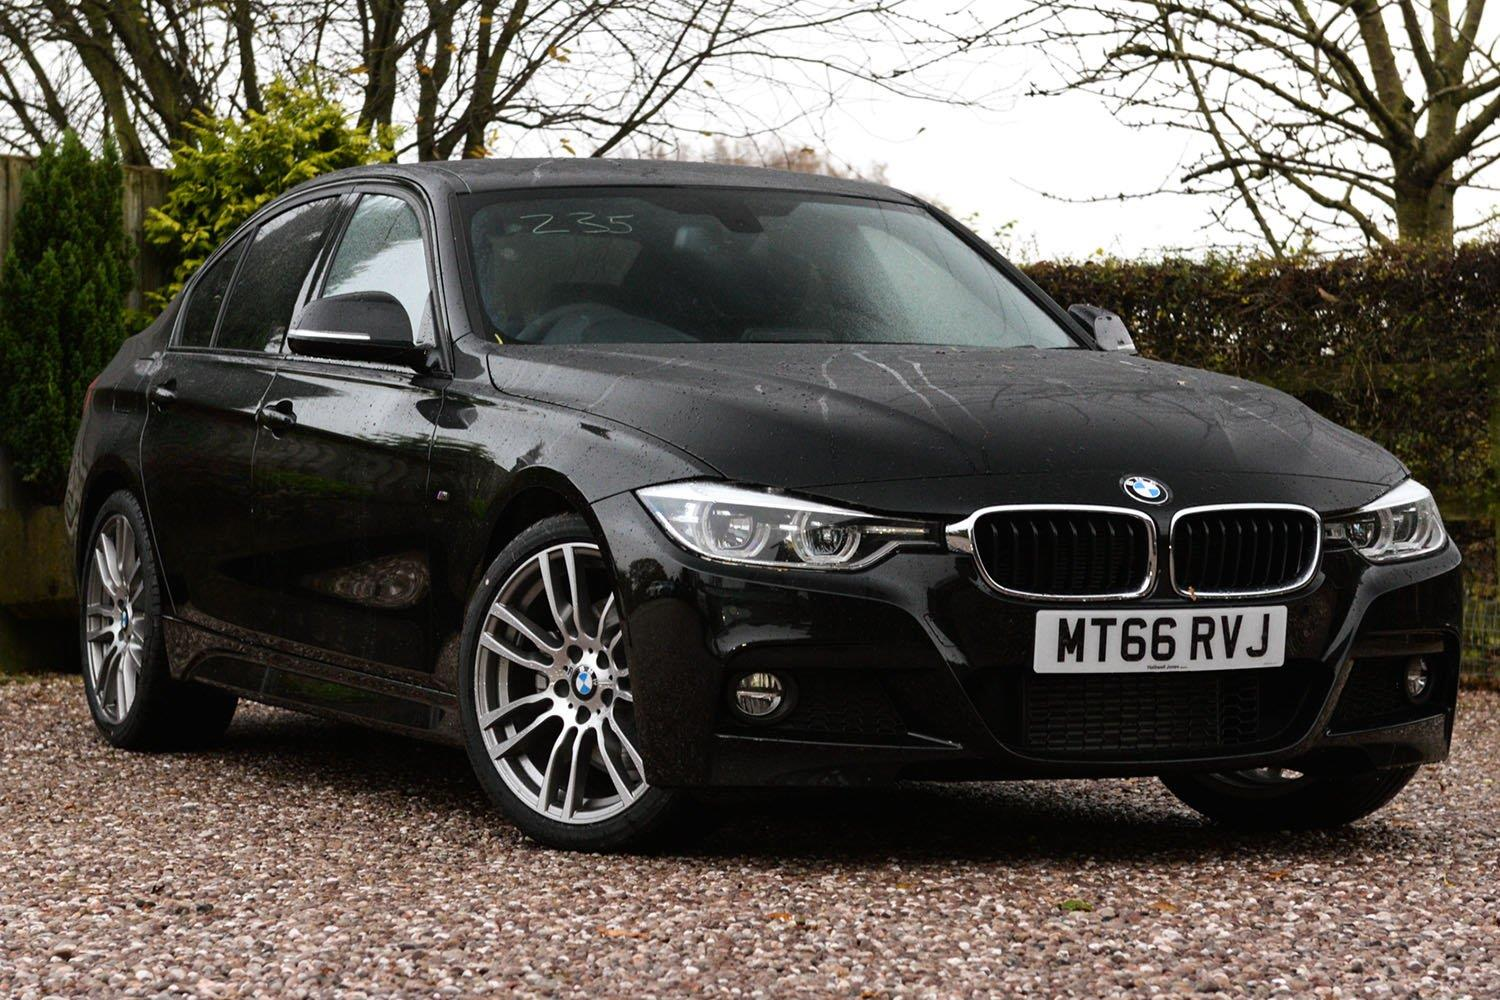 BMW 3 Series Saloon MT66RVJ - Image 9